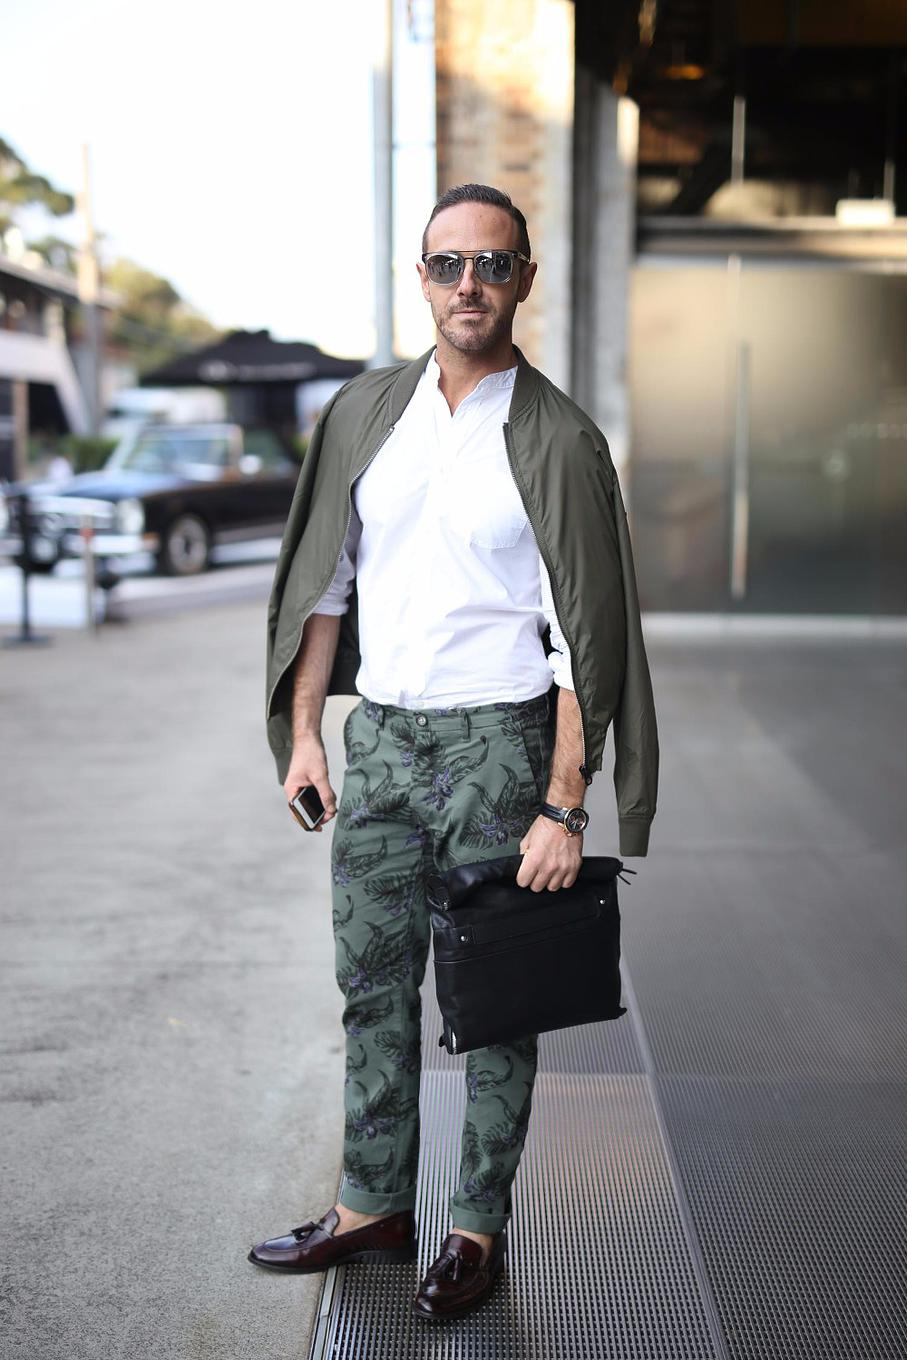 """Doesn't matter how much you spend you can look great at any budget""- Donny Galella TV Presenter and Stylist Donny Galella wears head to toe outfit from next.com accessorised with Armani sunglasses and Zara bag."